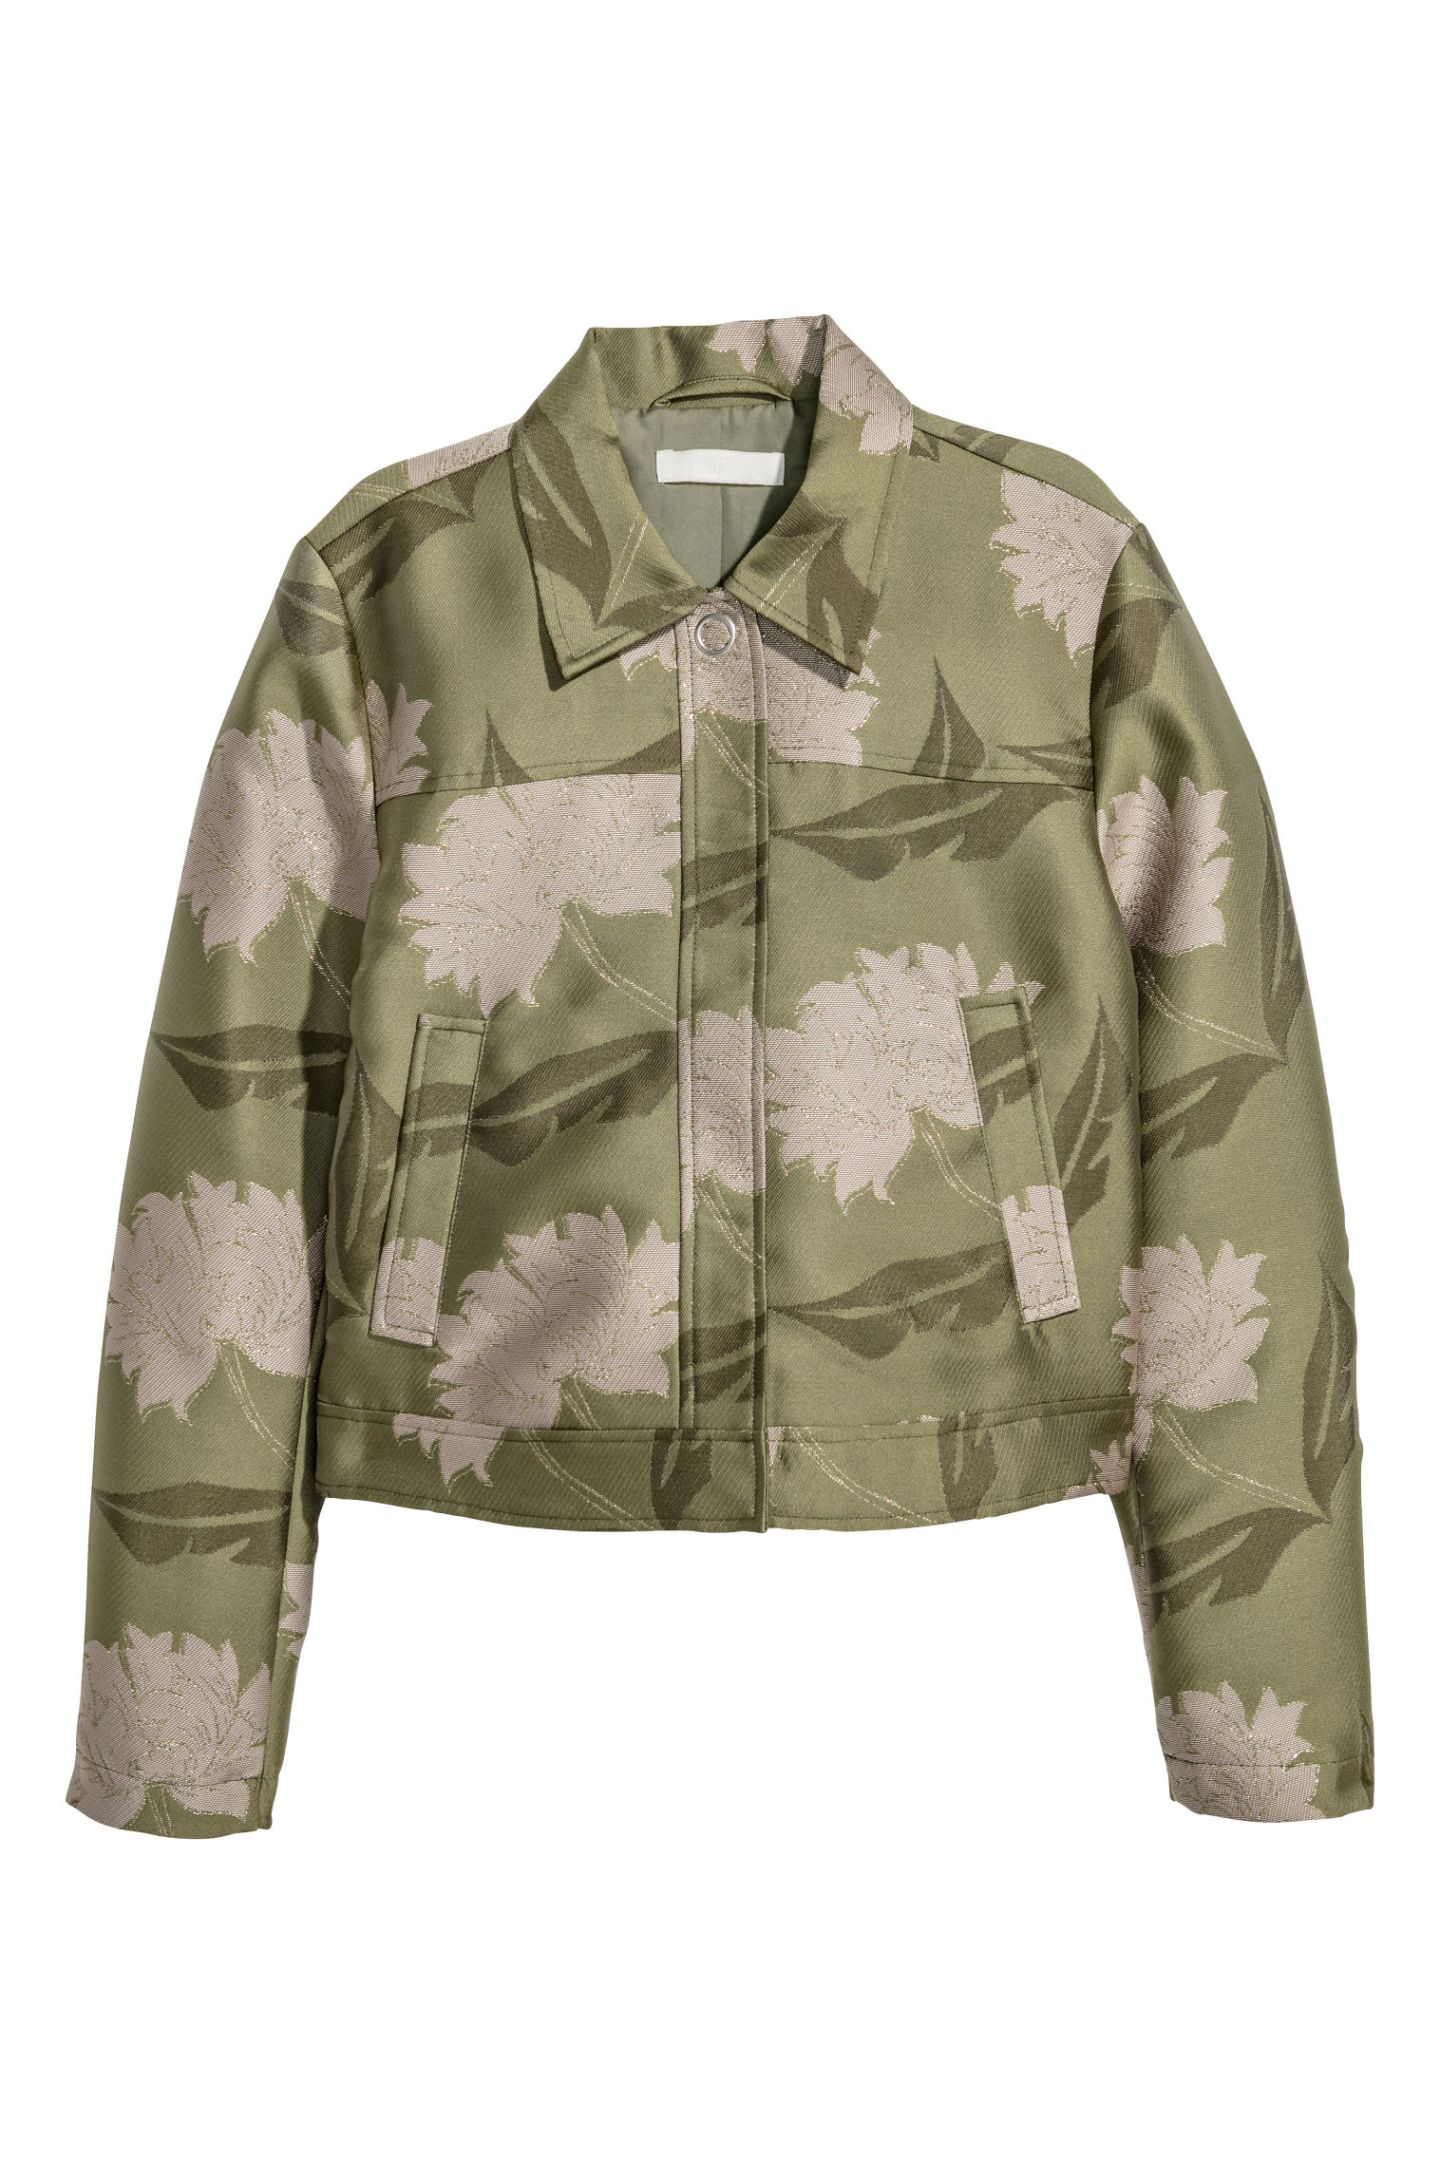 H and M patterned jacket